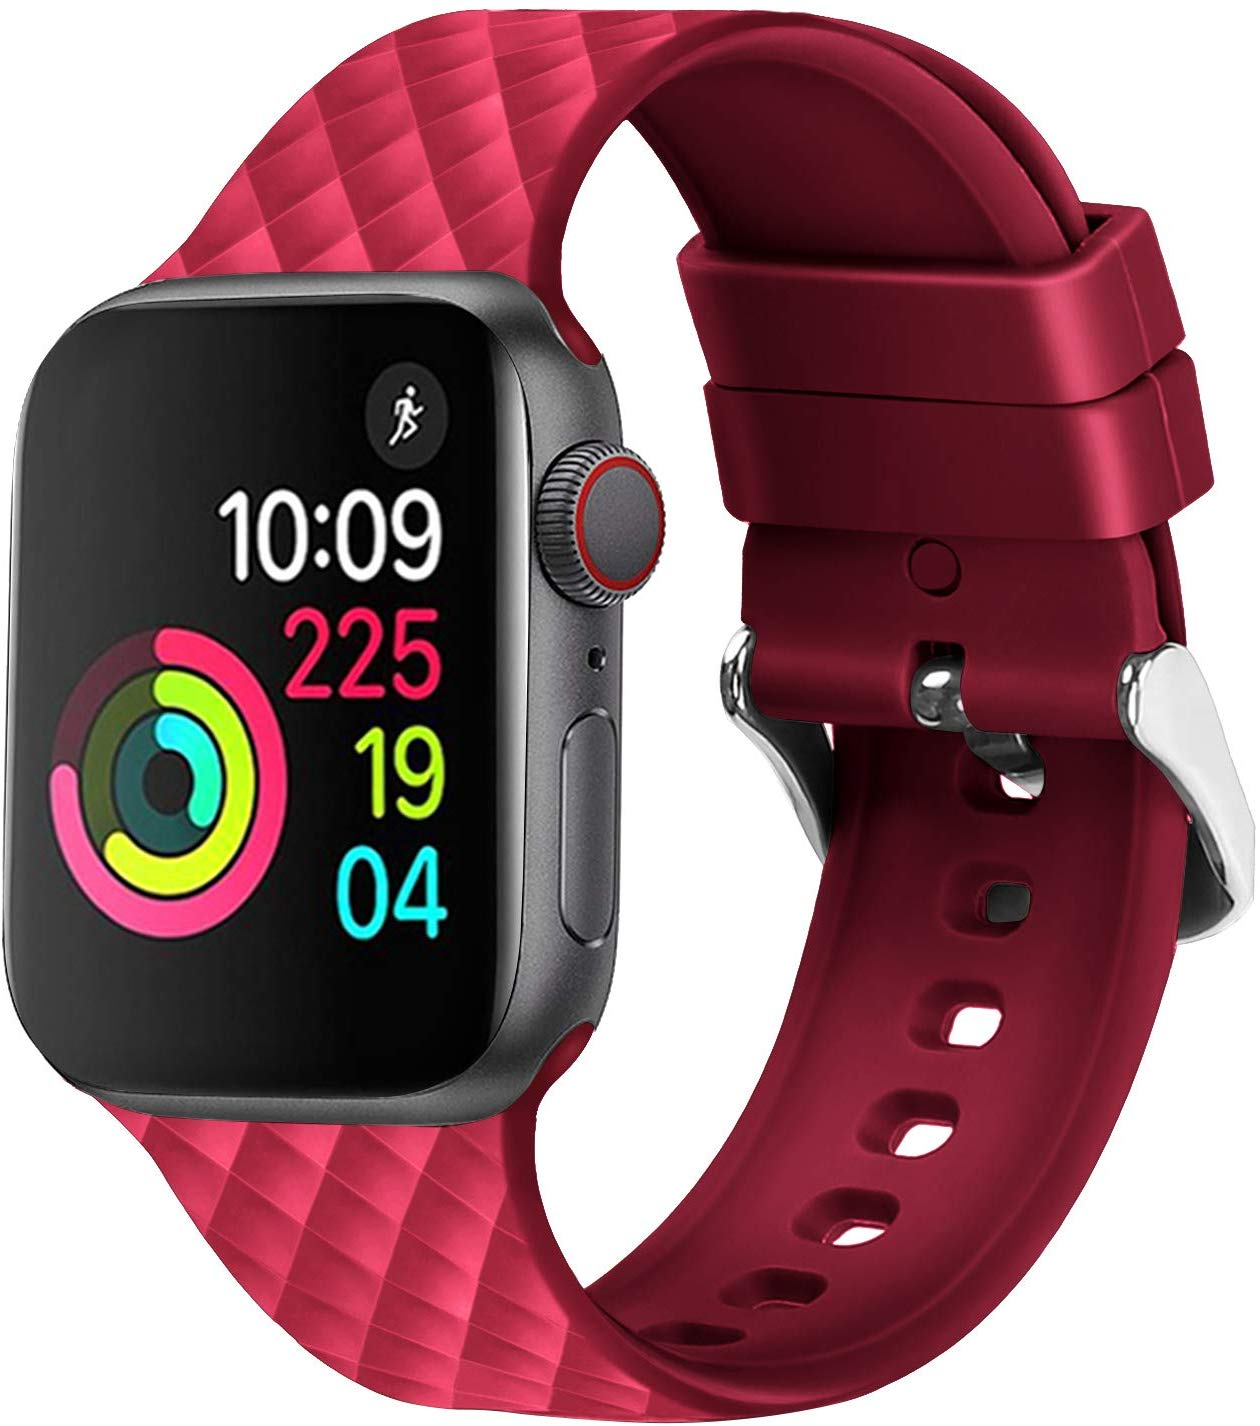 Strap For Apple Watch Band 4 5 44mm 40mm Sport Silicone Watchband Iwatch 3 2 1 42mm 38mm Bracelet Belt Apple Watch Accessories